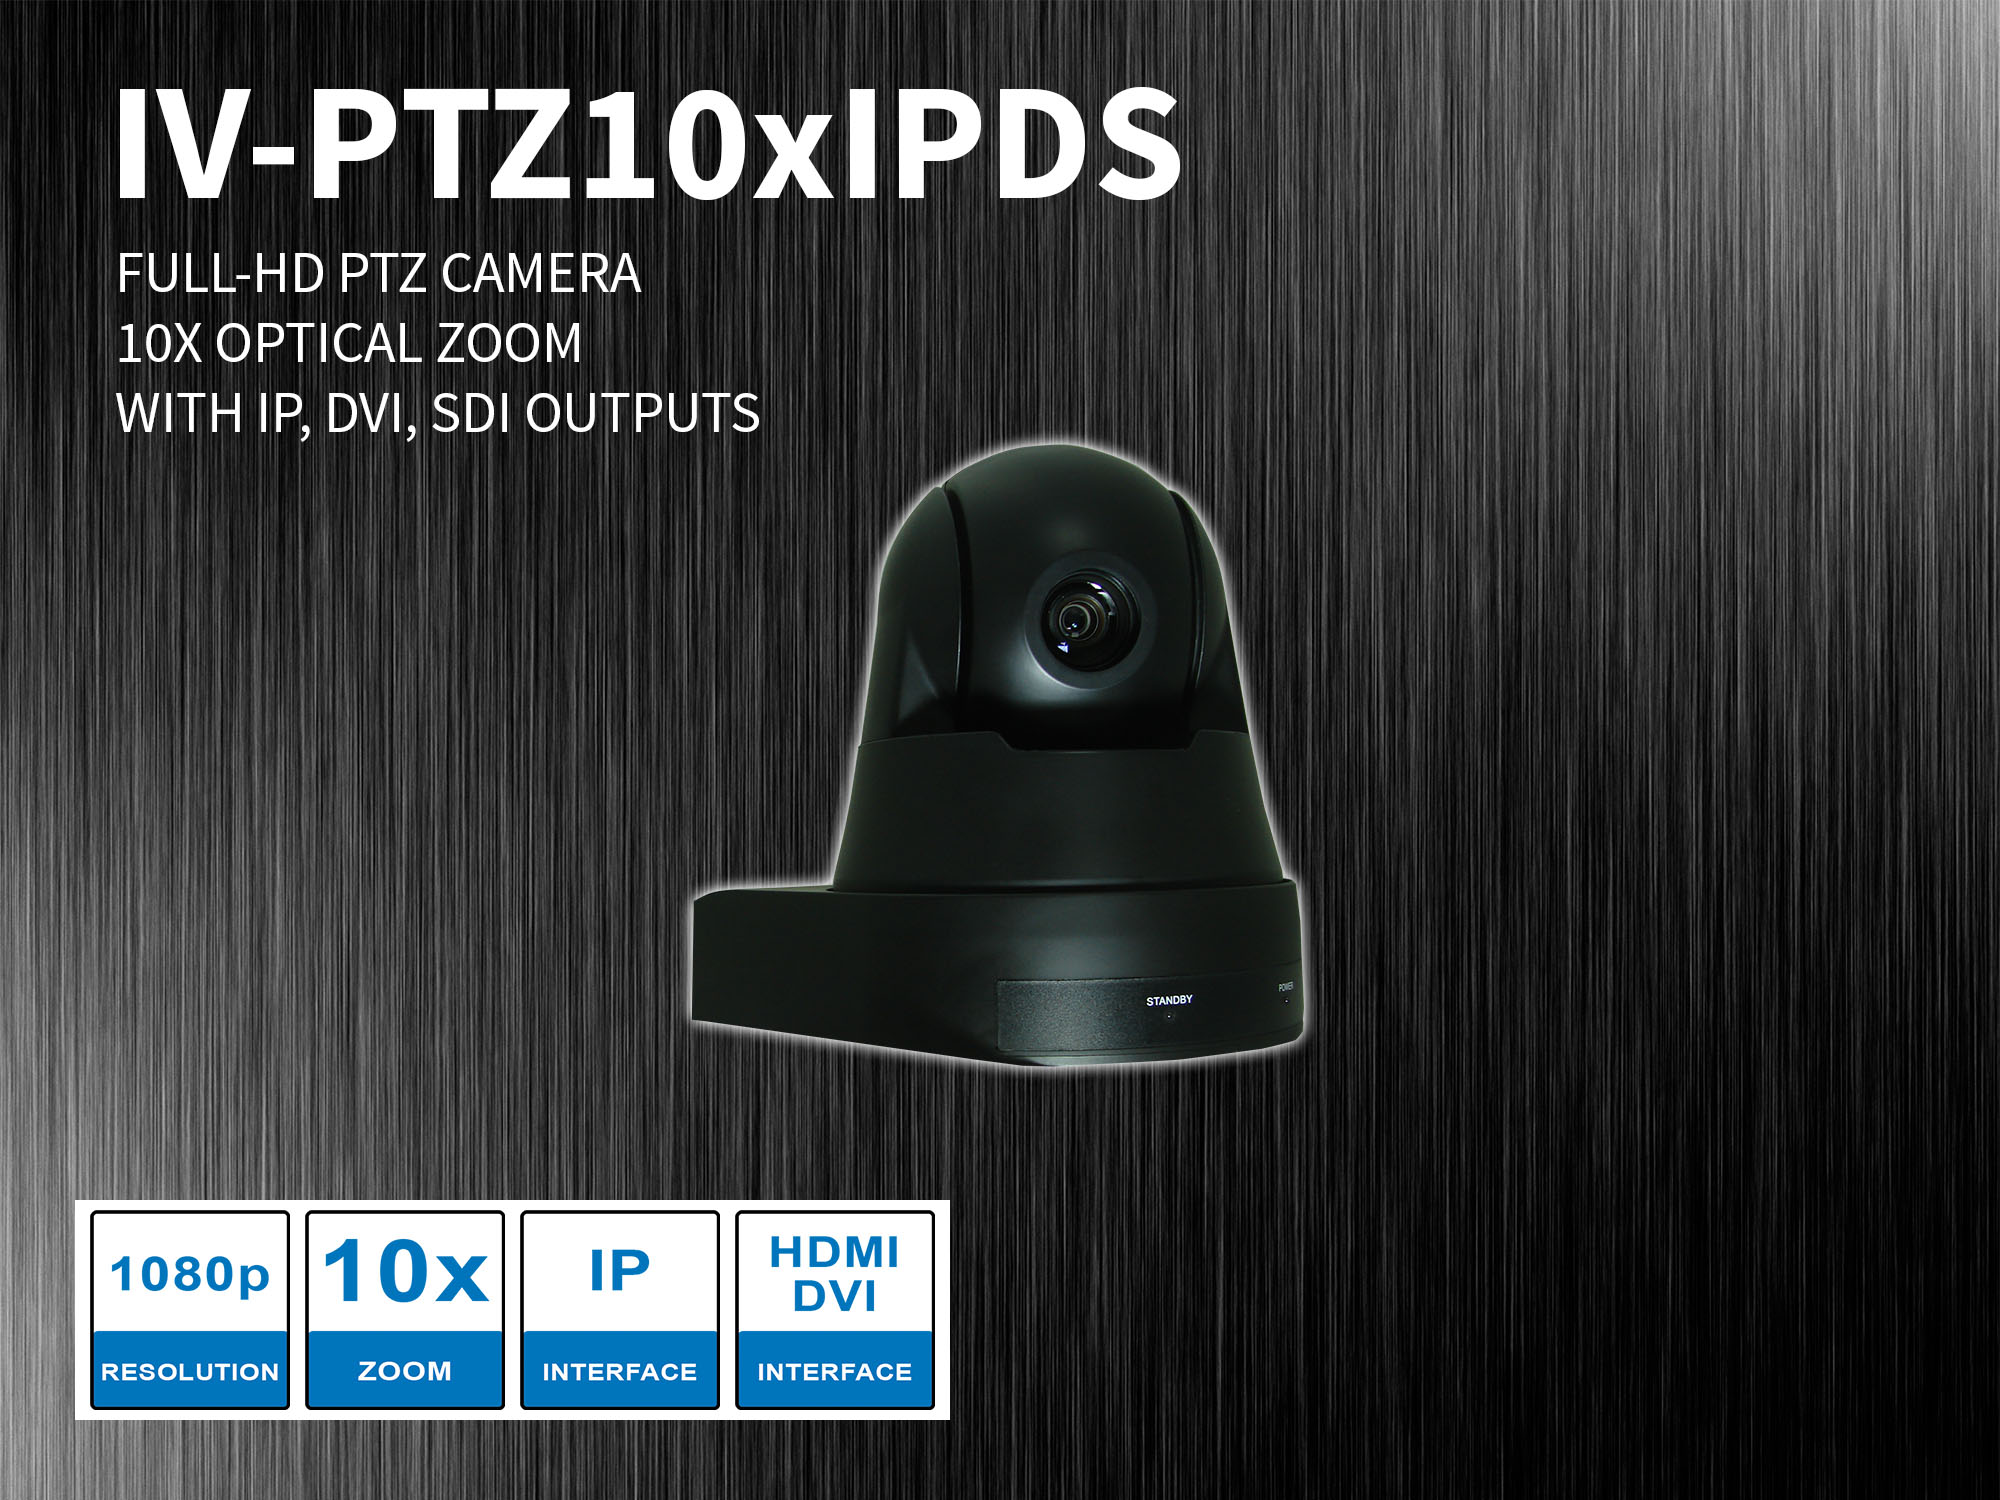 IV-PTZ10xIPDS HD PTZ camera